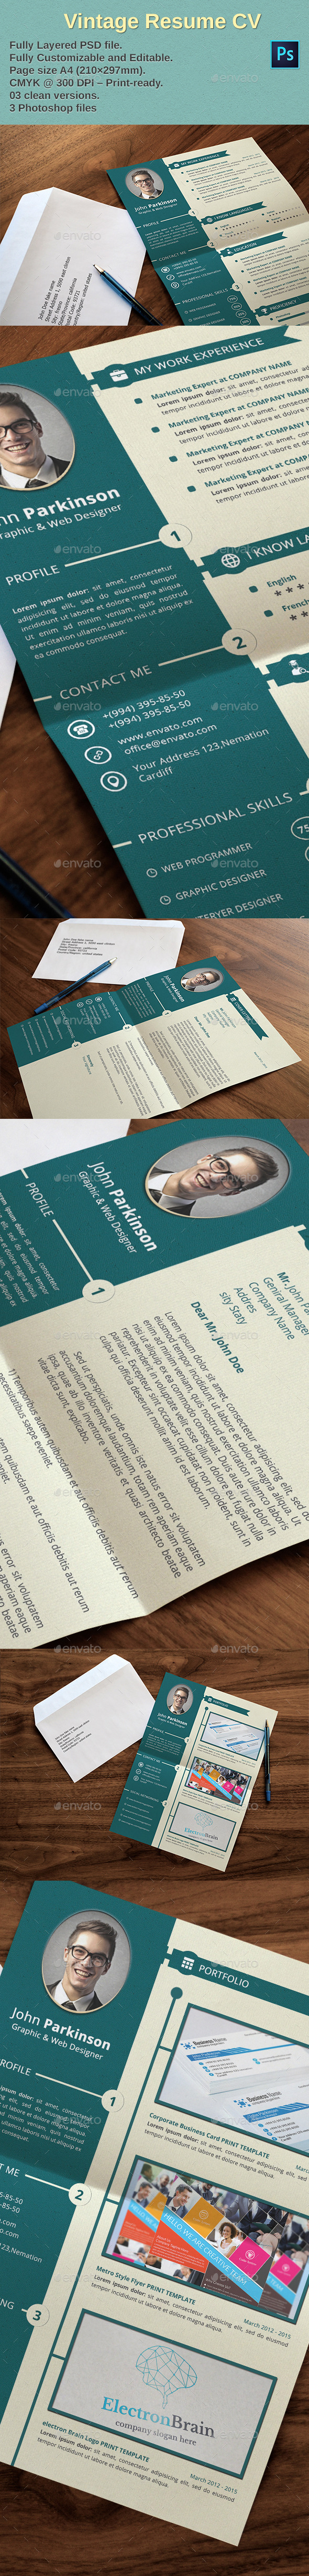 GraphicRiver Vintage Resume CV 9619306